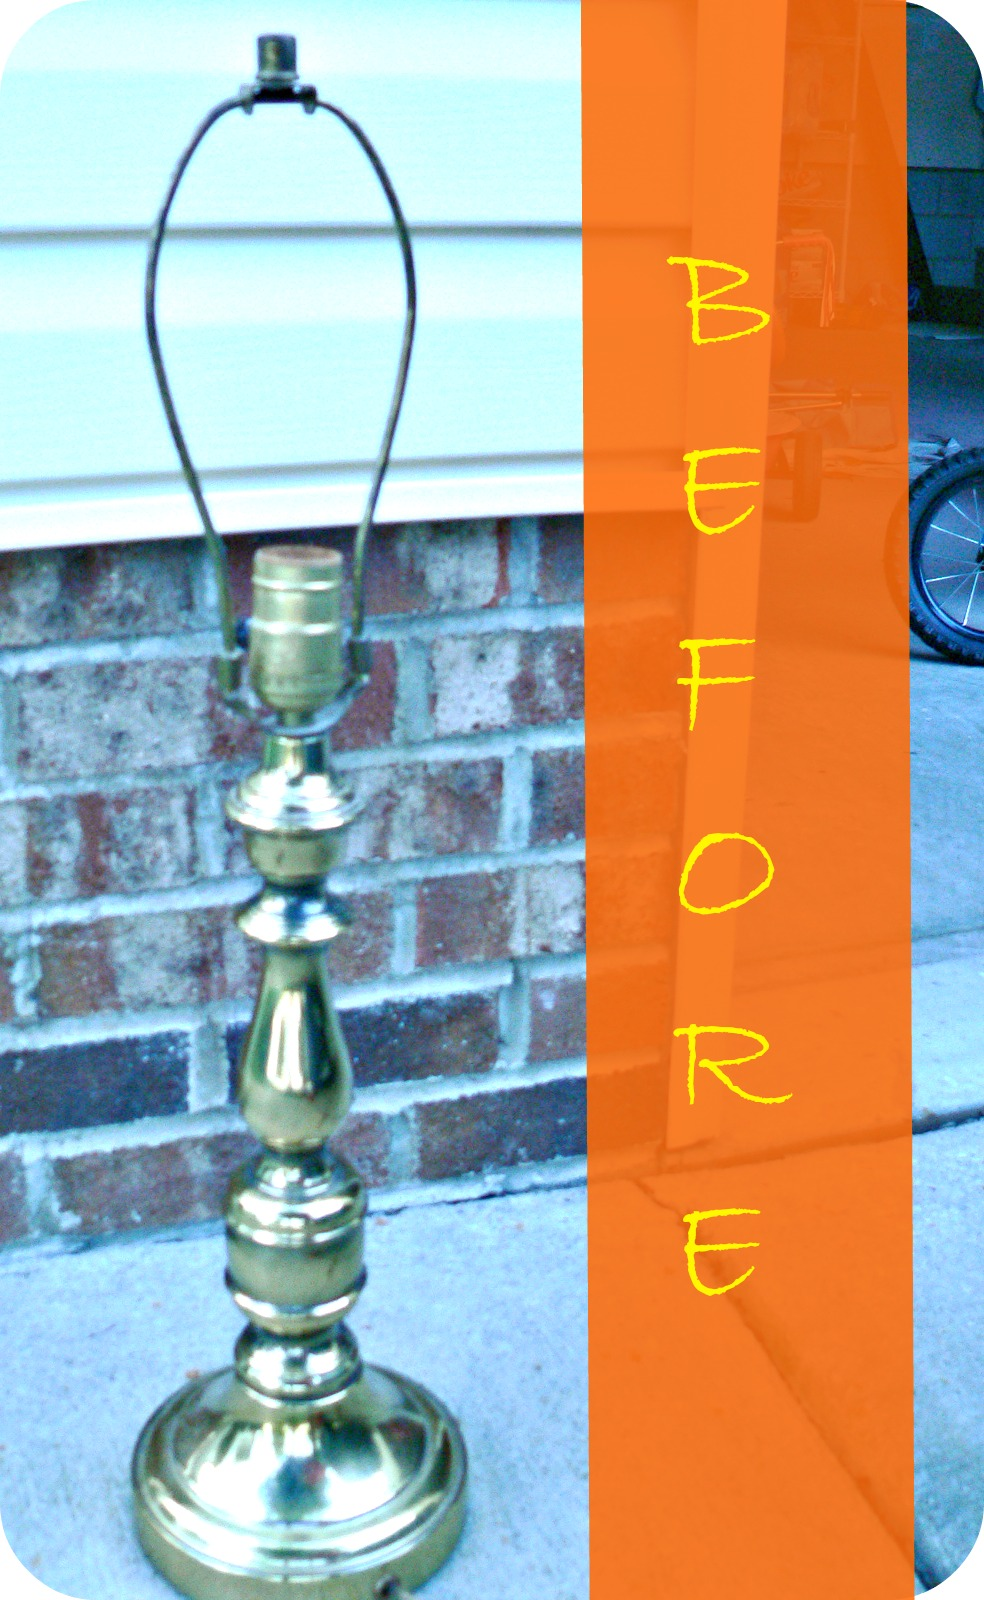 BEFORELAMP Lamp & Ugly Painting Makeover